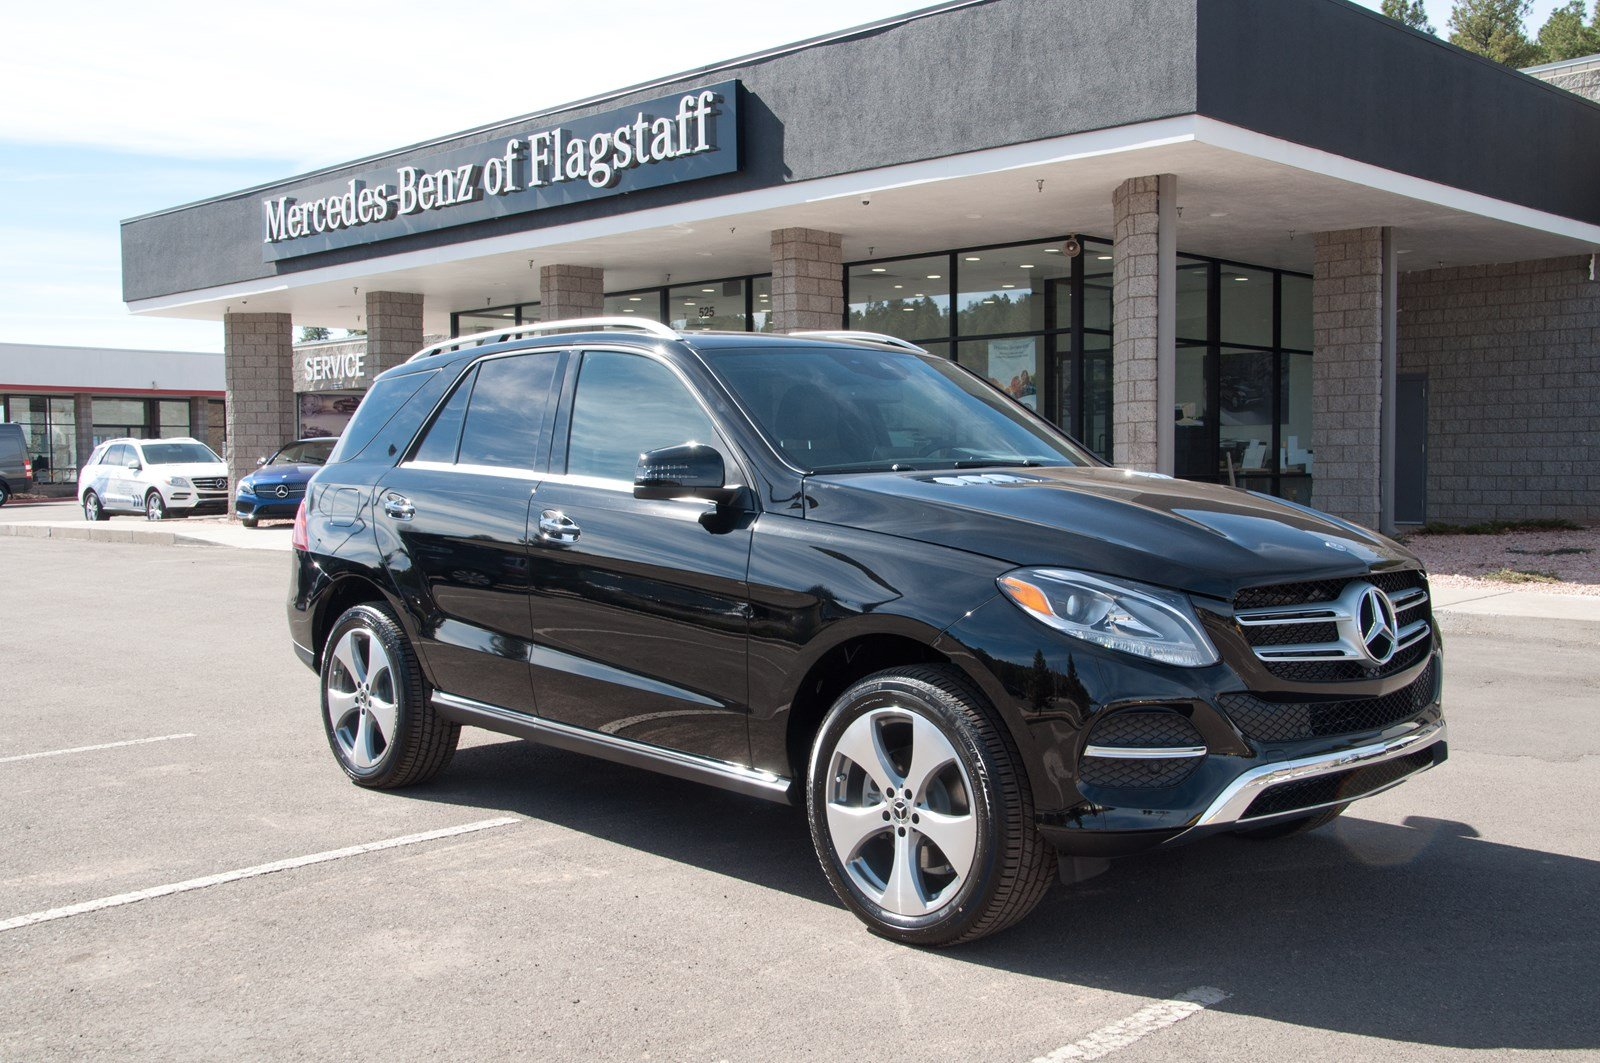 new 2017 mercedes benz gle gle 350 suv in flagstaff mh917096 mercedes benz of flagstaff. Black Bedroom Furniture Sets. Home Design Ideas